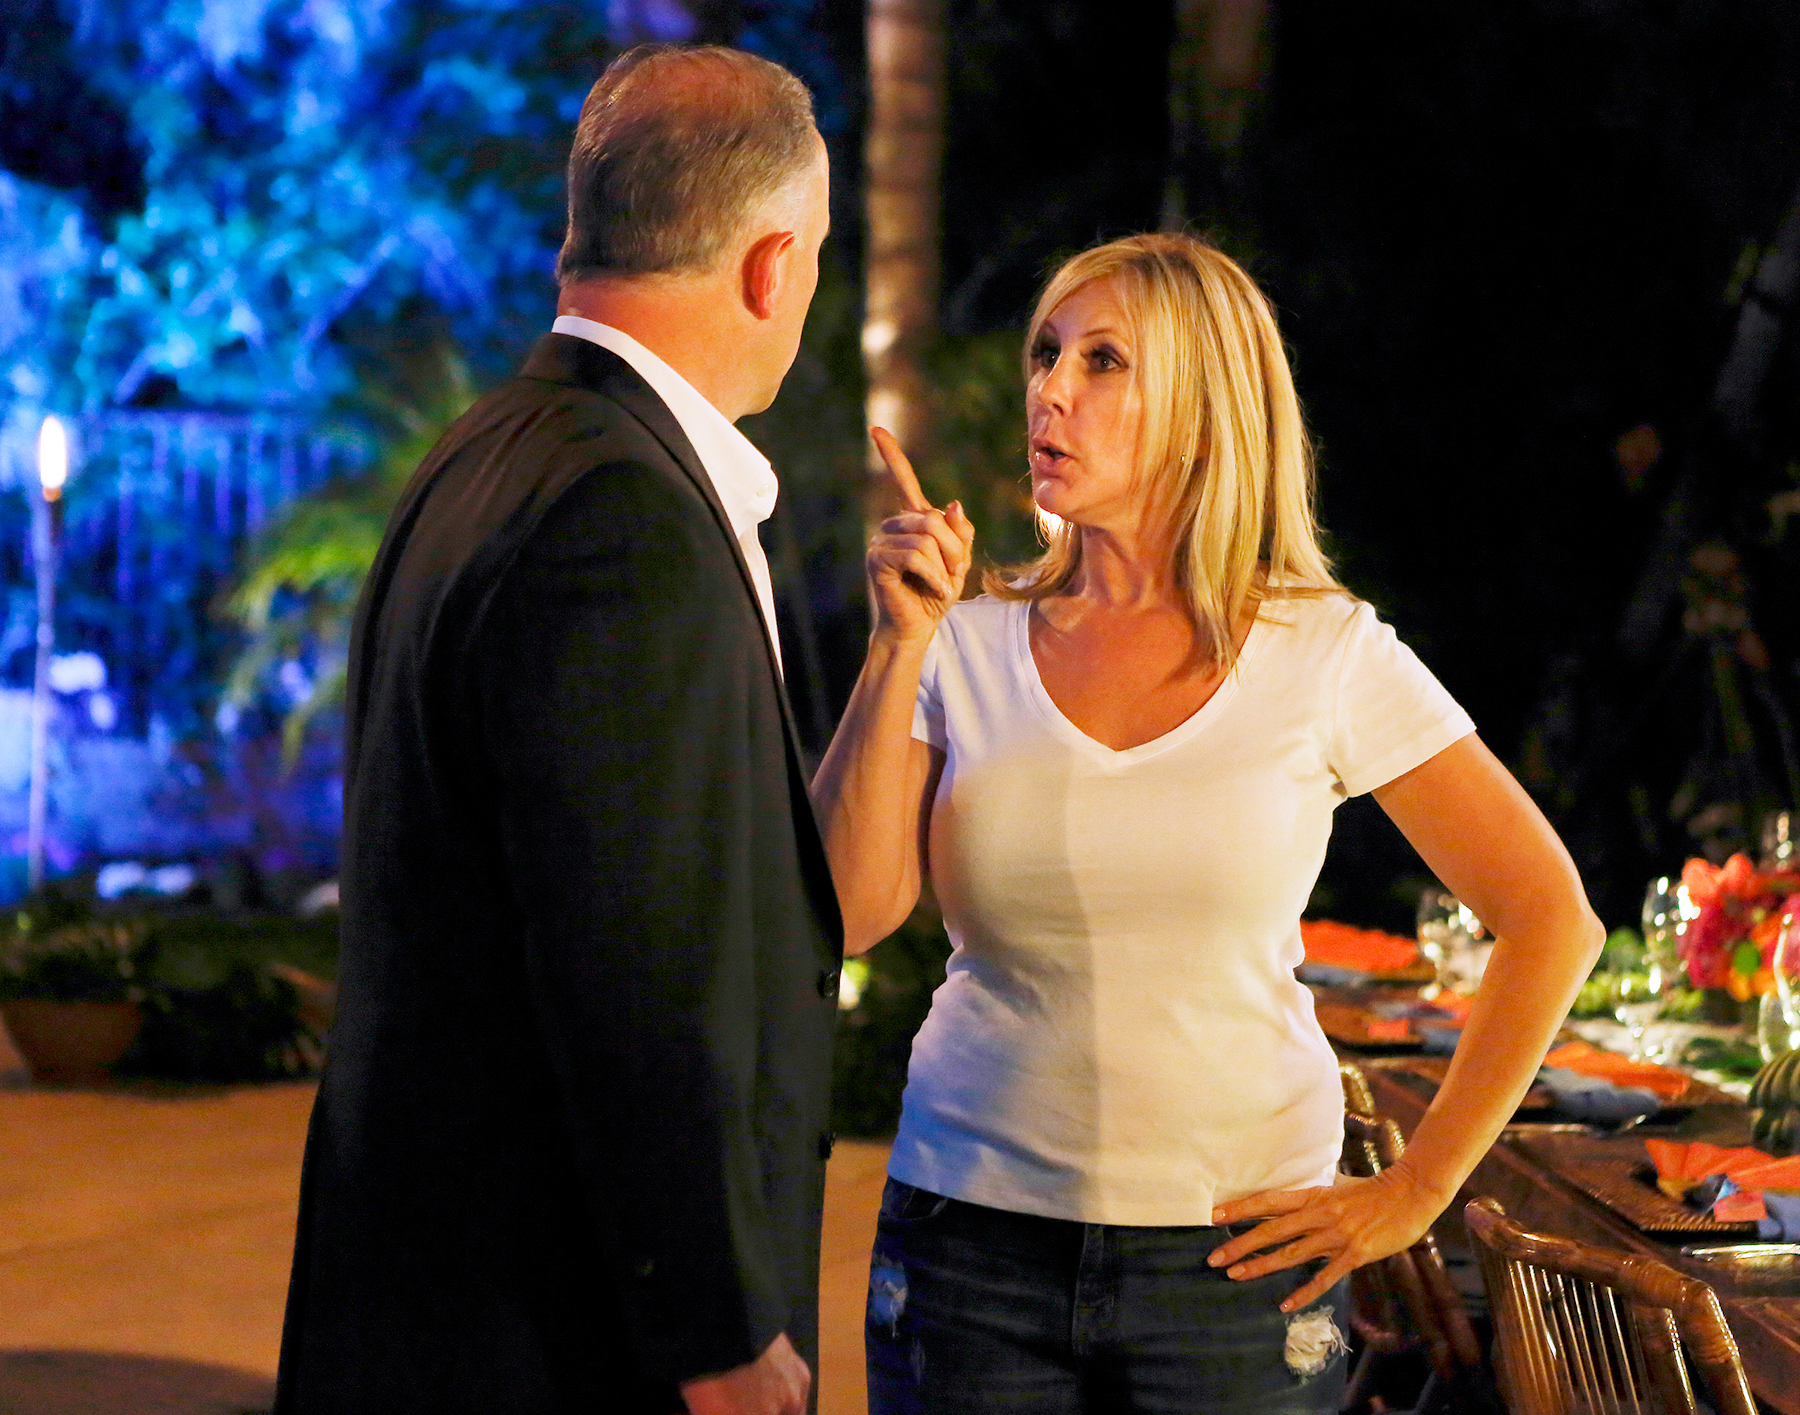 Brooks Ayers and Vicki Gunvalson on The Real Housewives Of Orange County.